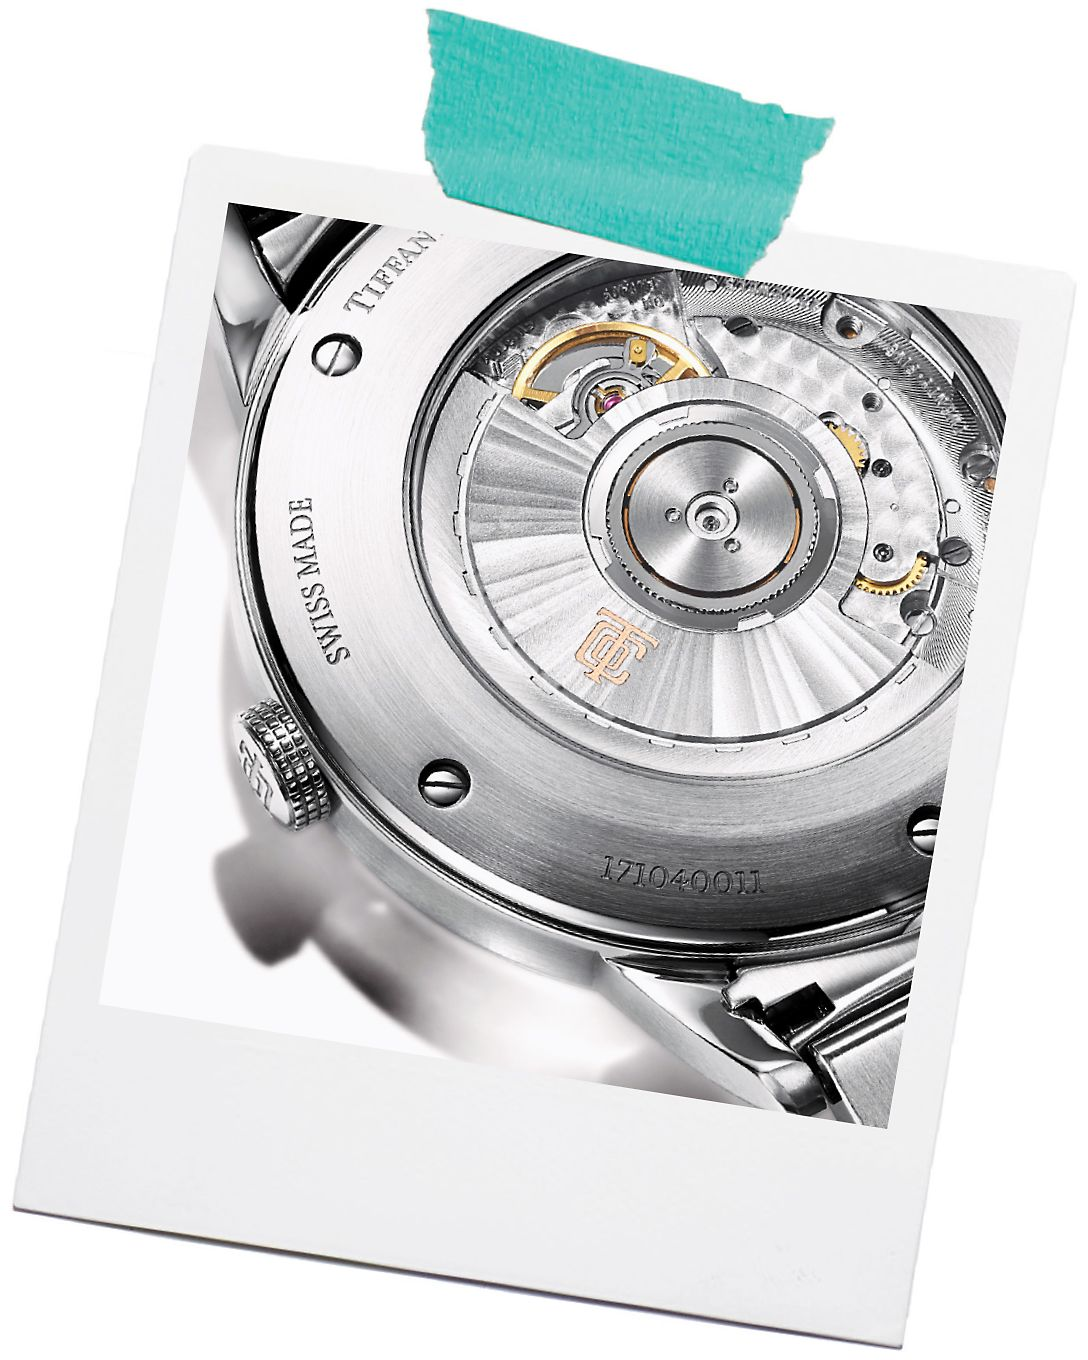 Discover Tiffany & Co. Watch Care